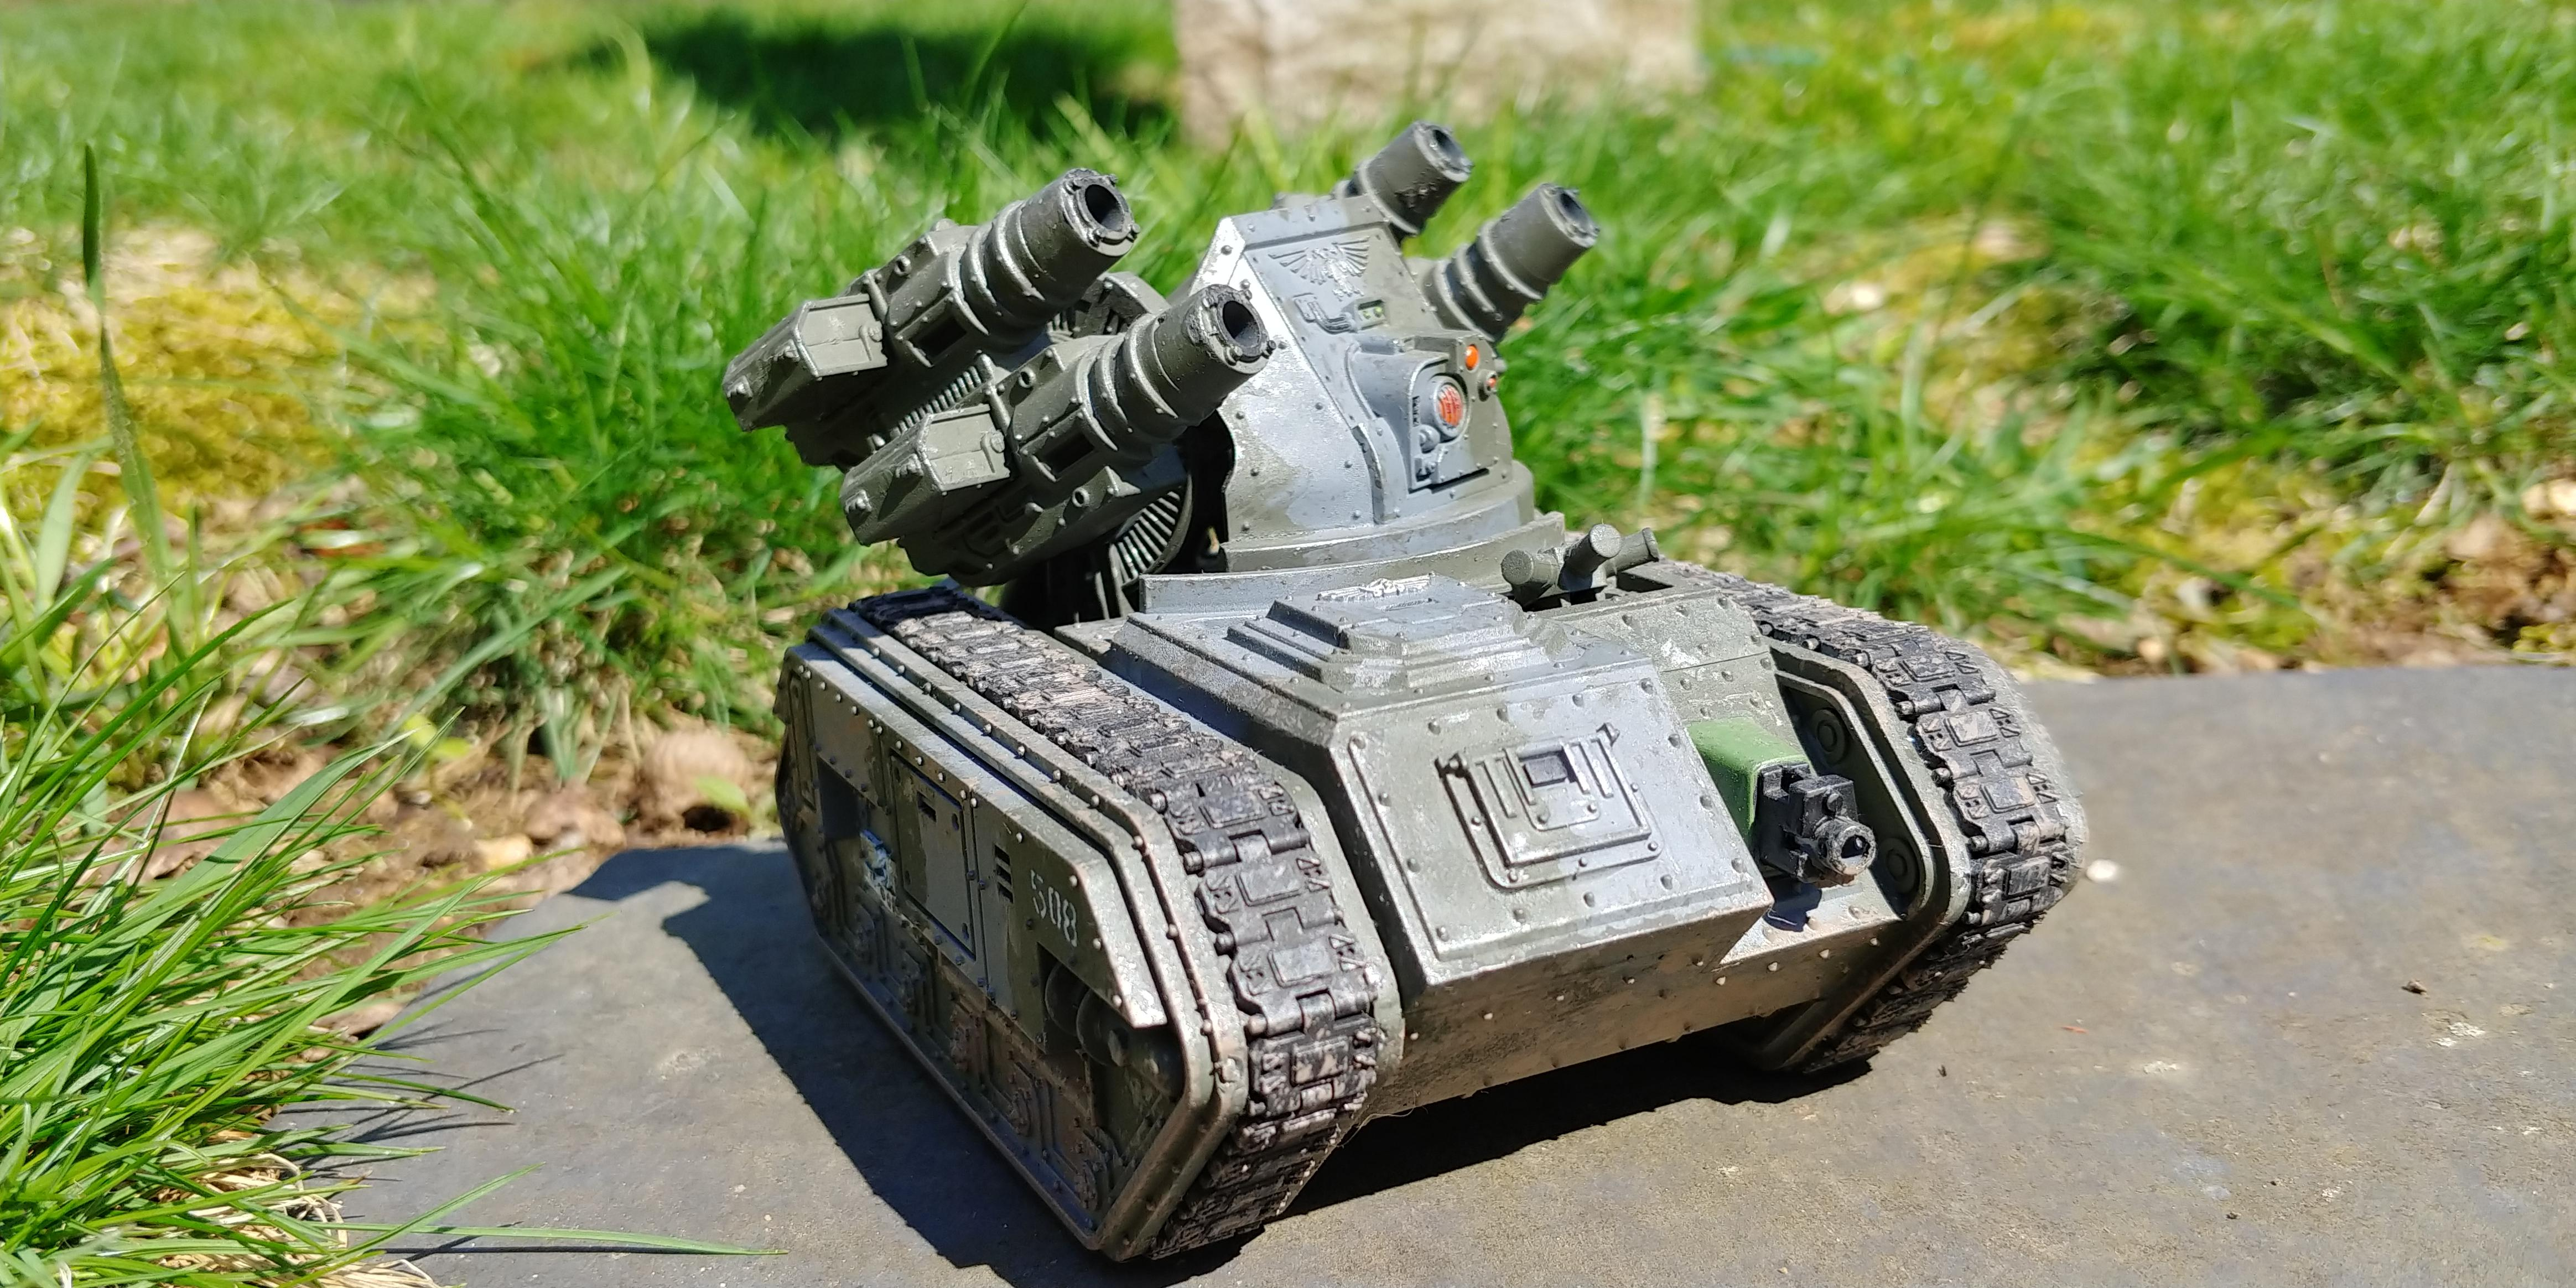 508th, Am, Artillery, Astra Militarum, Came, Heavy Support, Imperial Guard, Tank, Urban, Wyvern